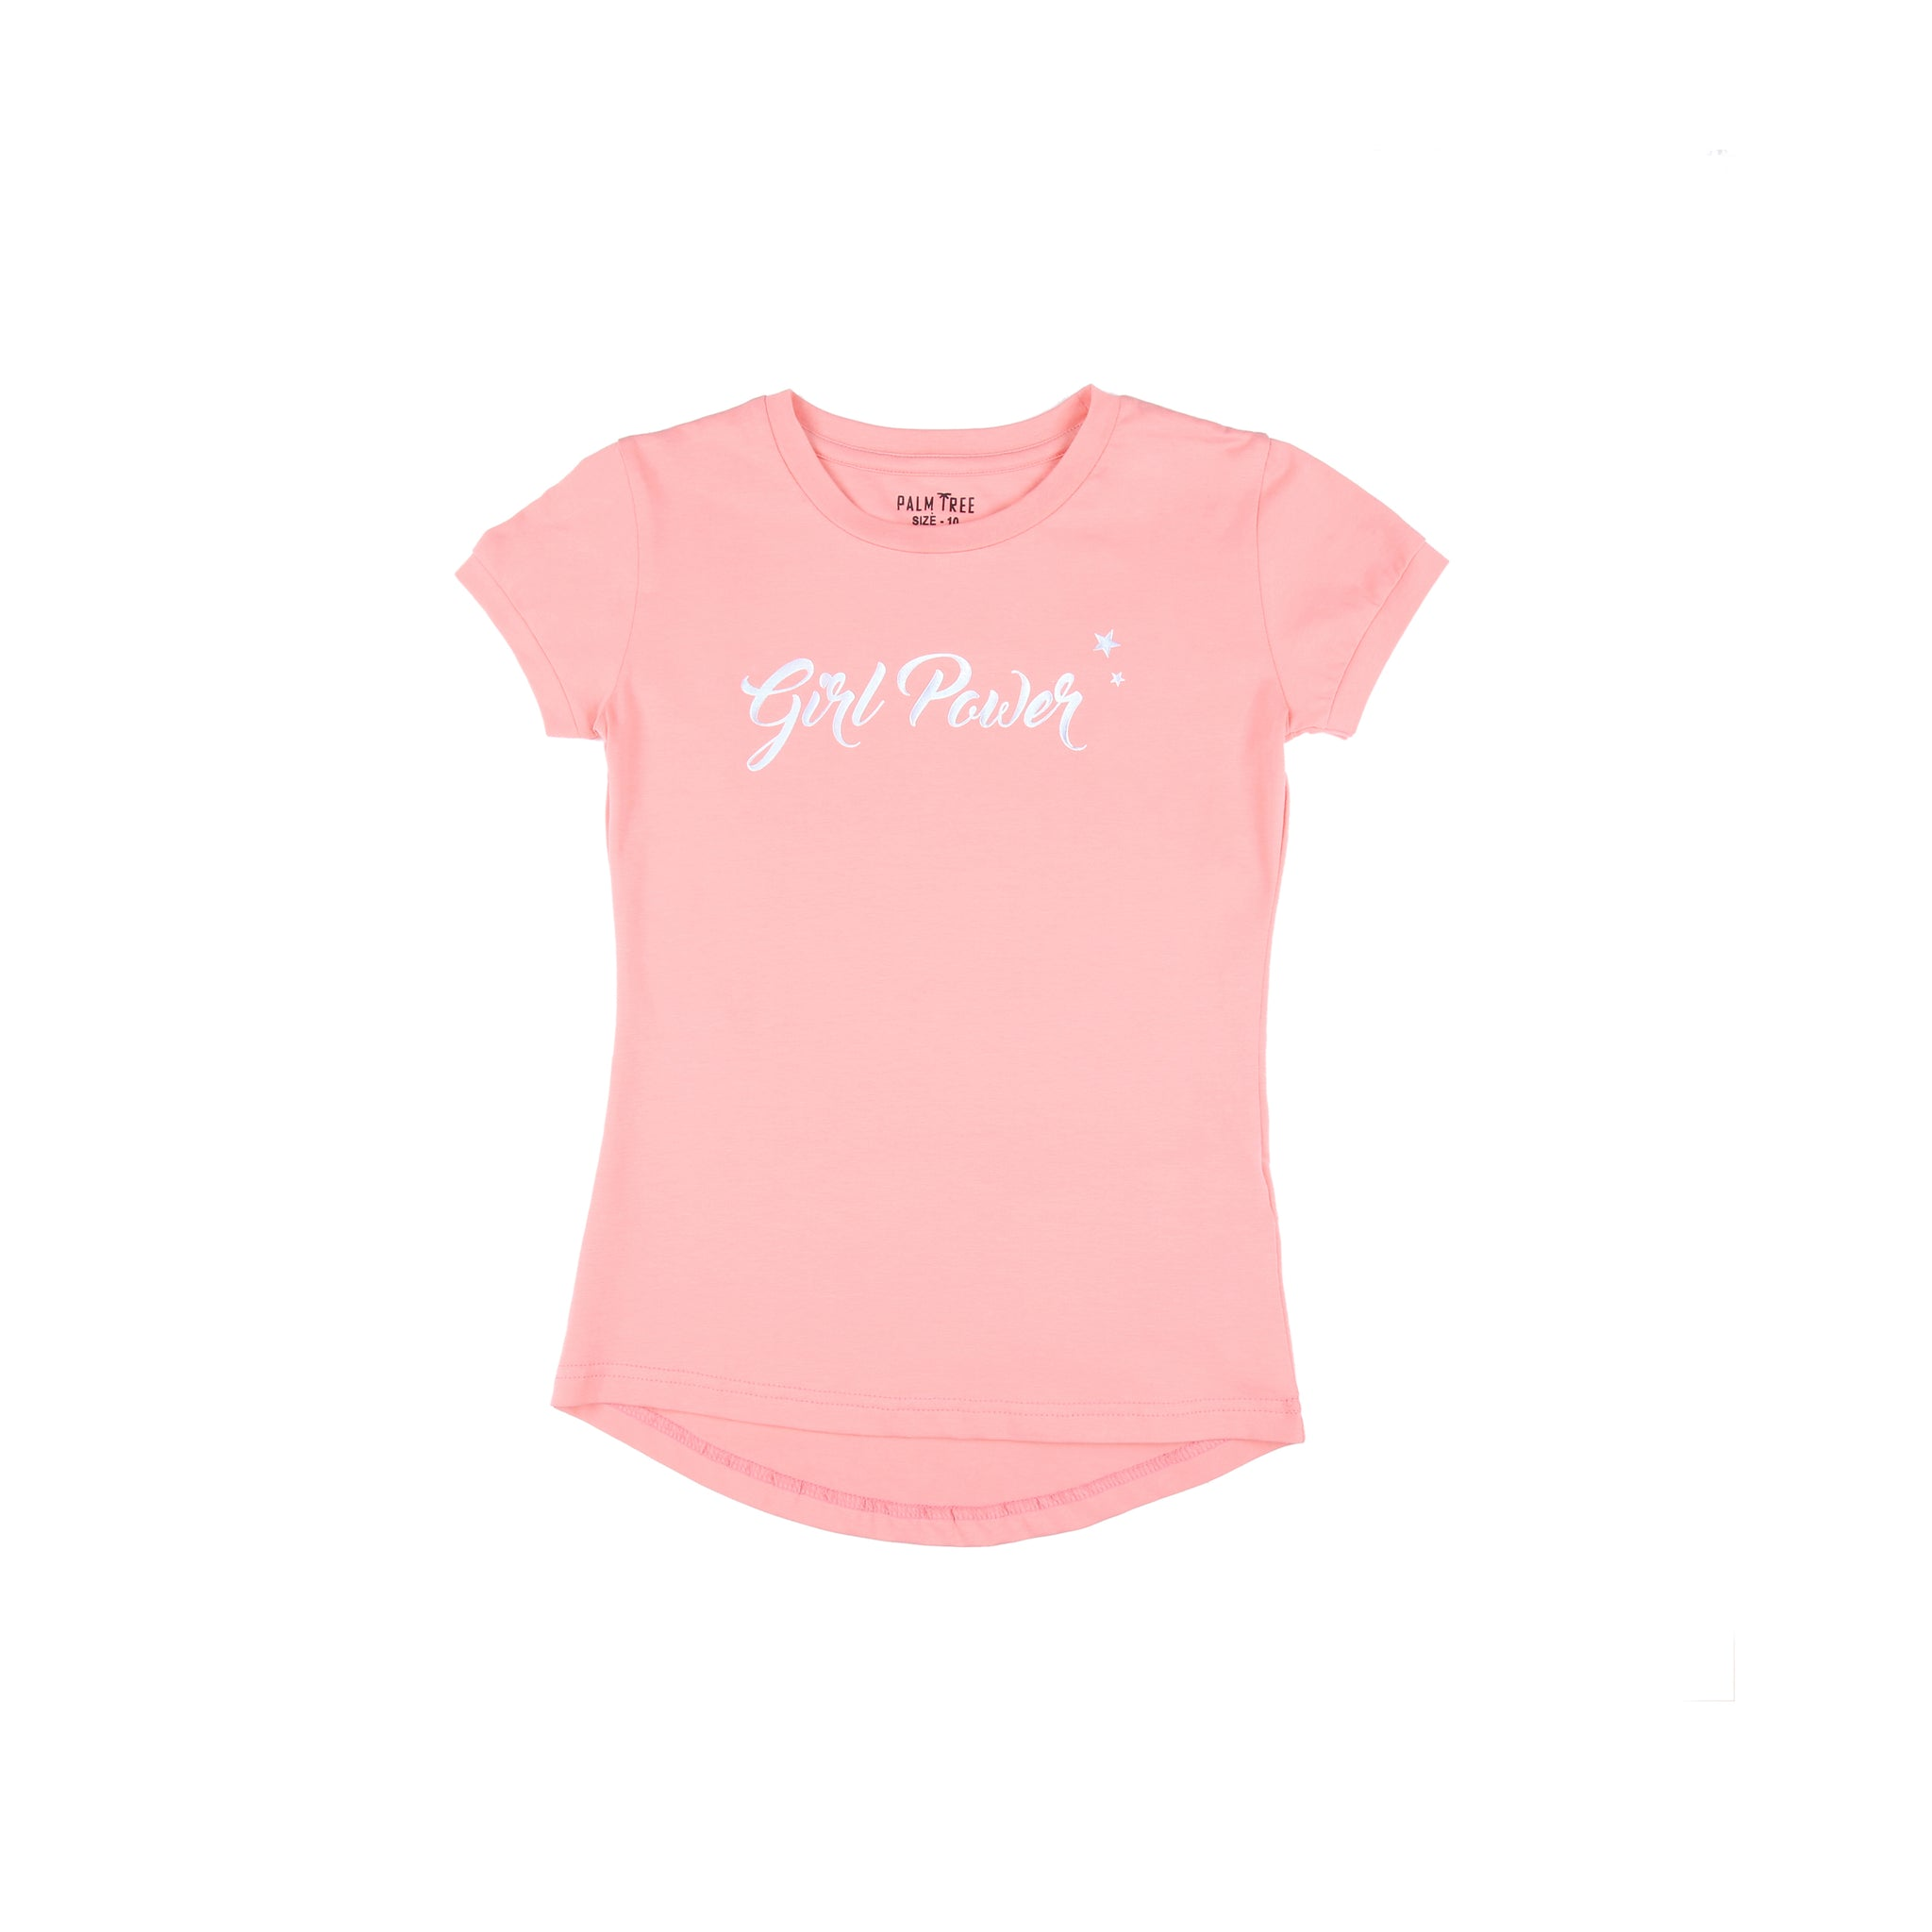 Girl Power Pink Top